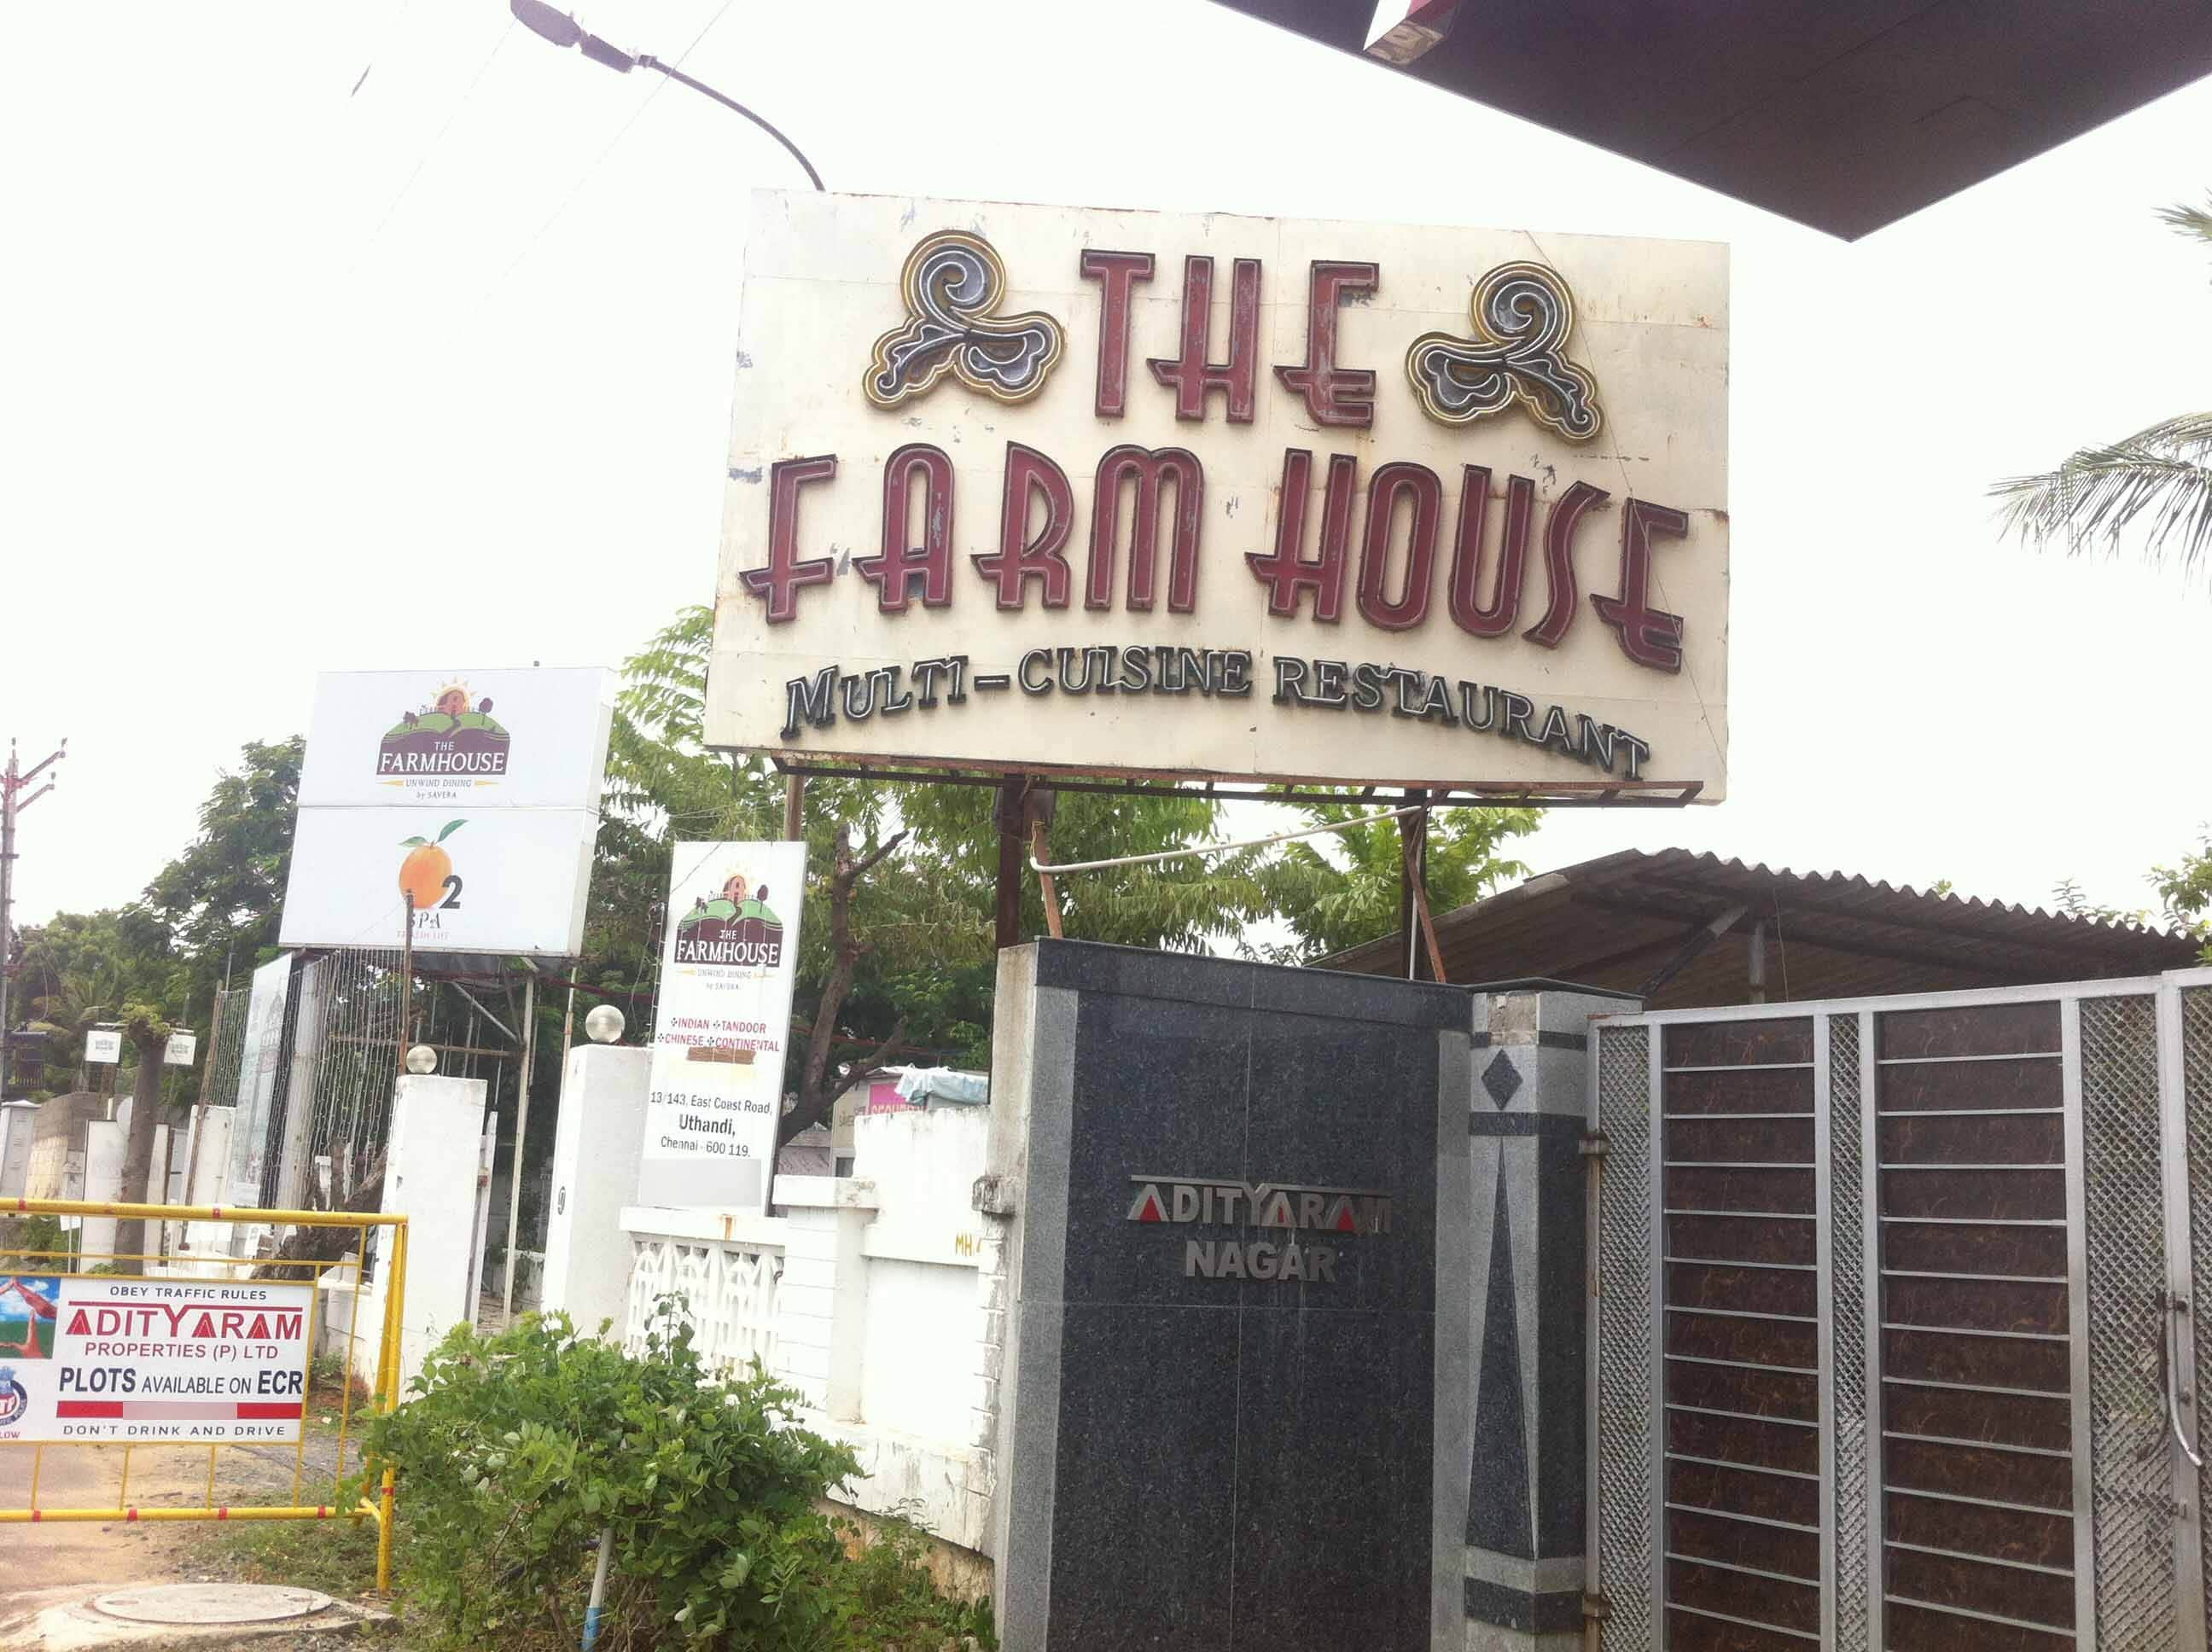 The Farmhouse - East Coast Road - Chennai Image